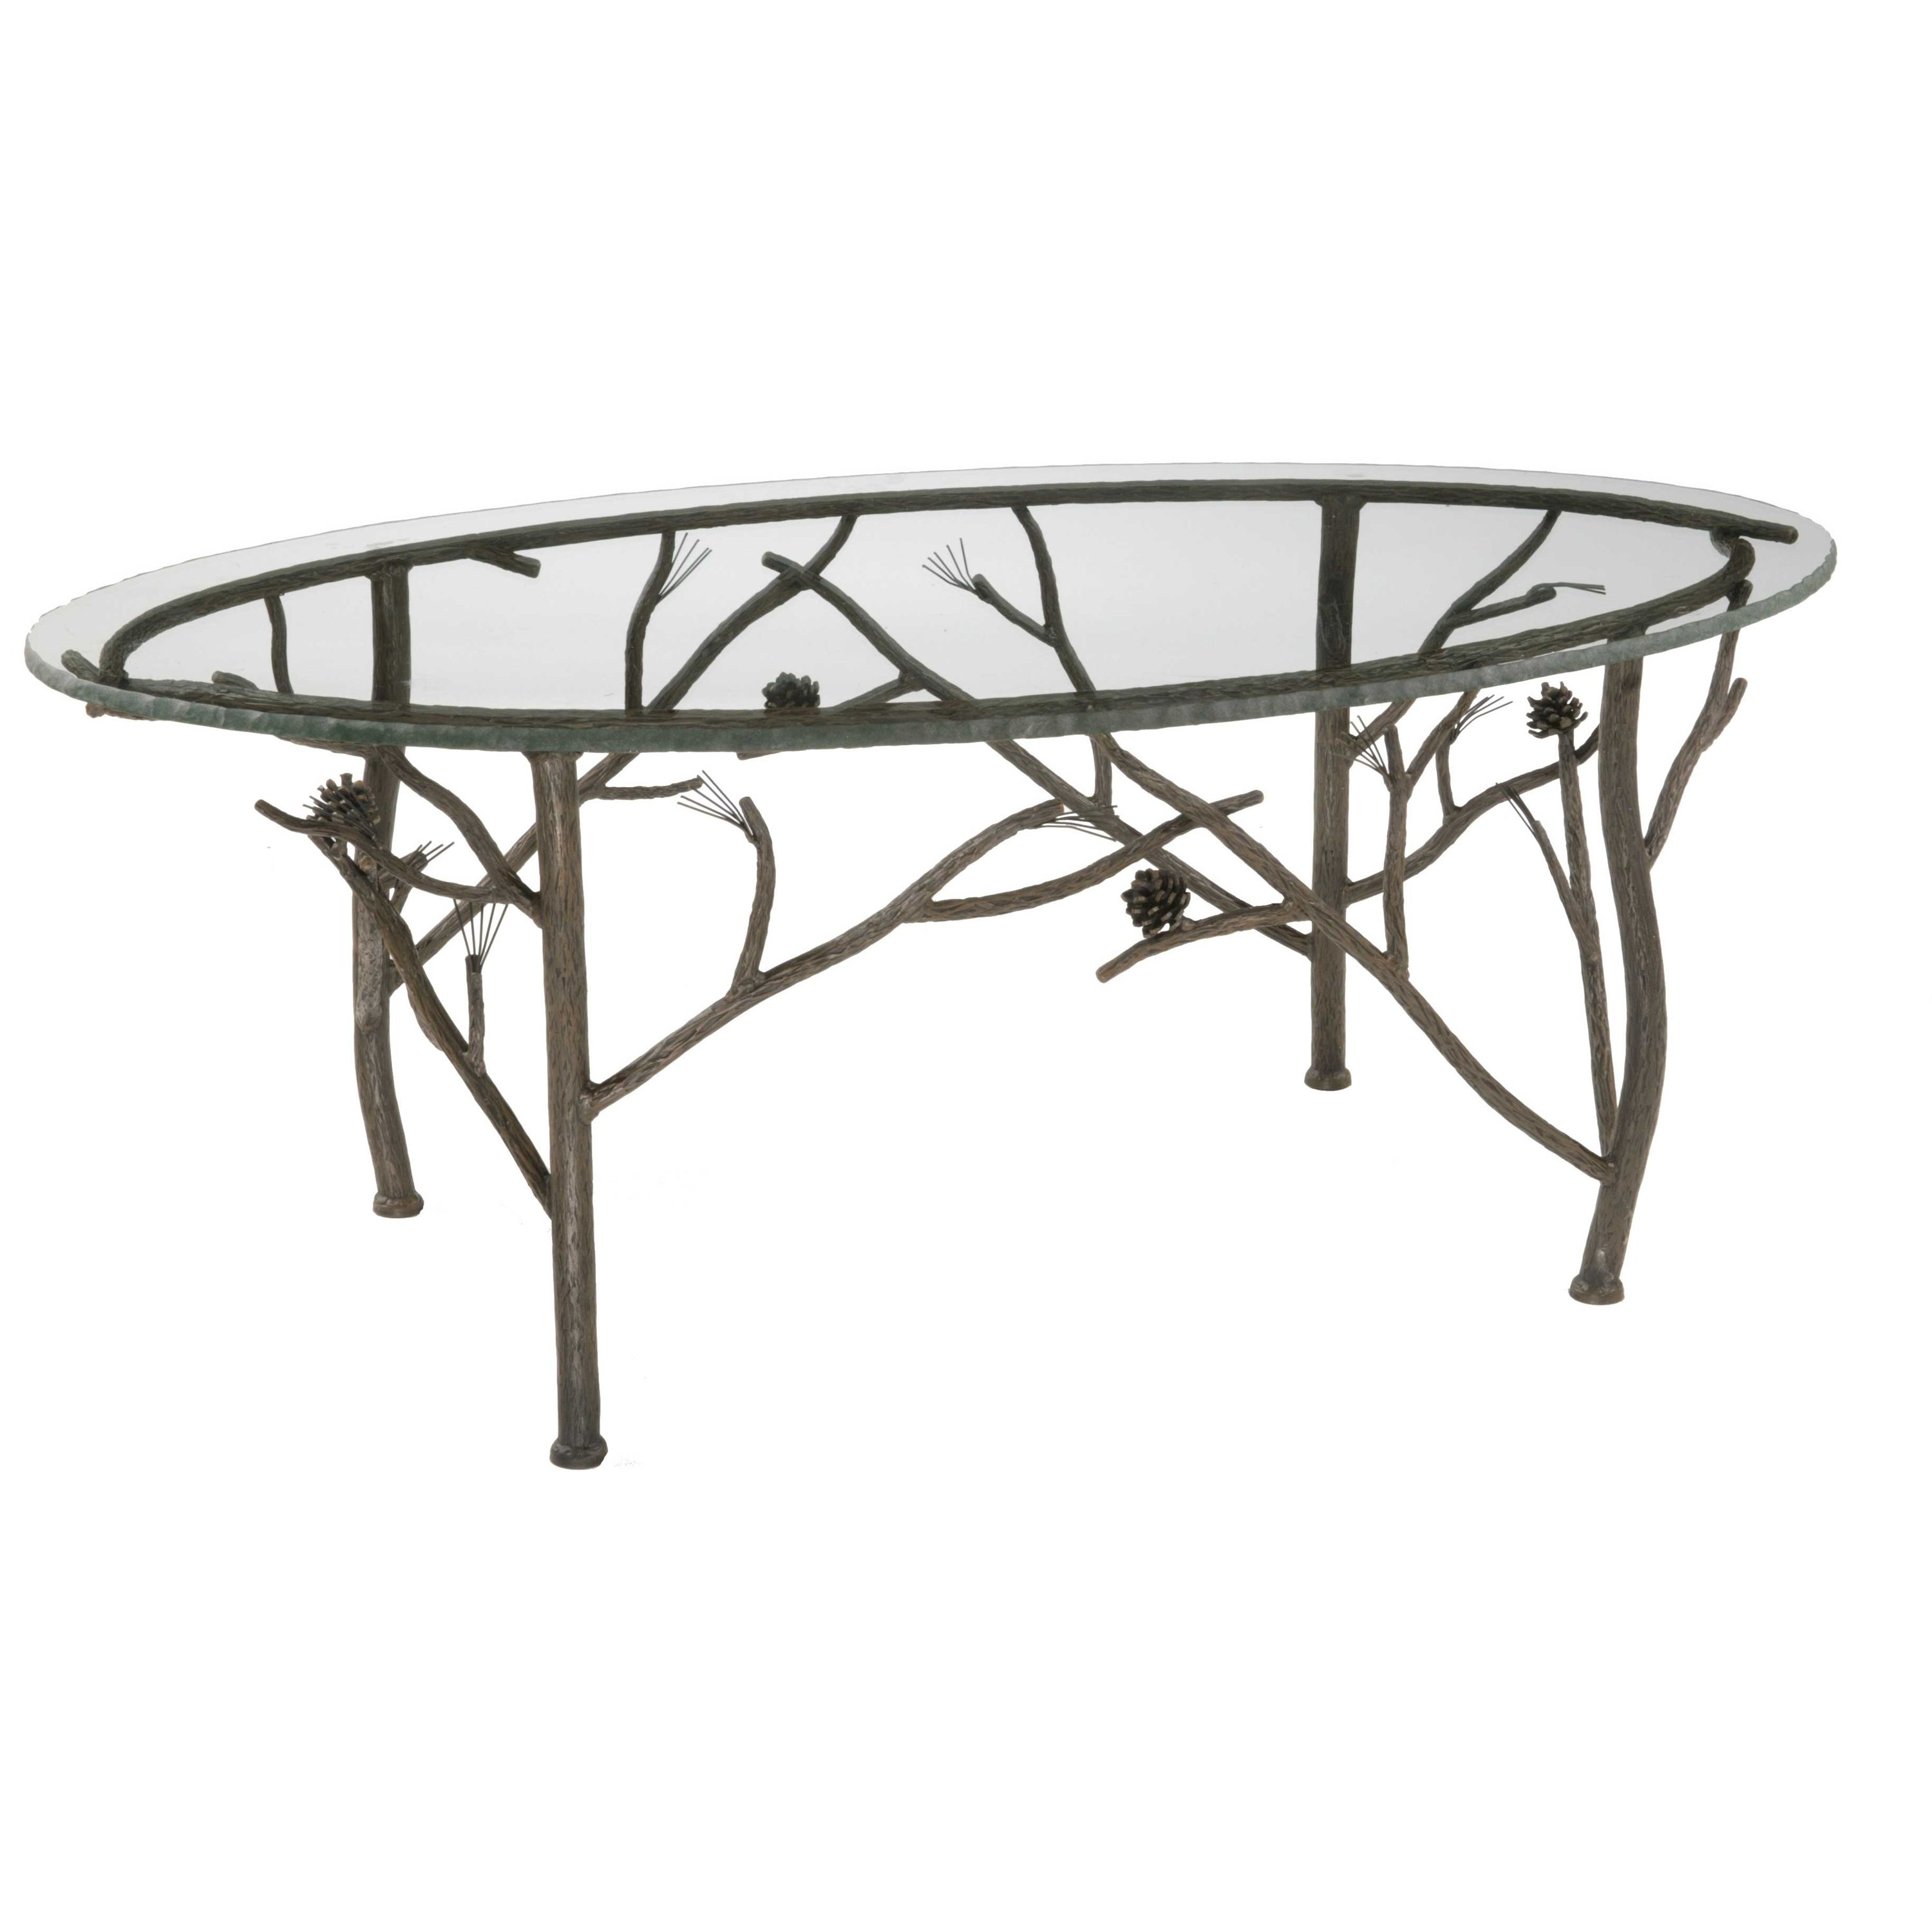 Wrought Iron Outdoor Side Table Http Cielobautista Com